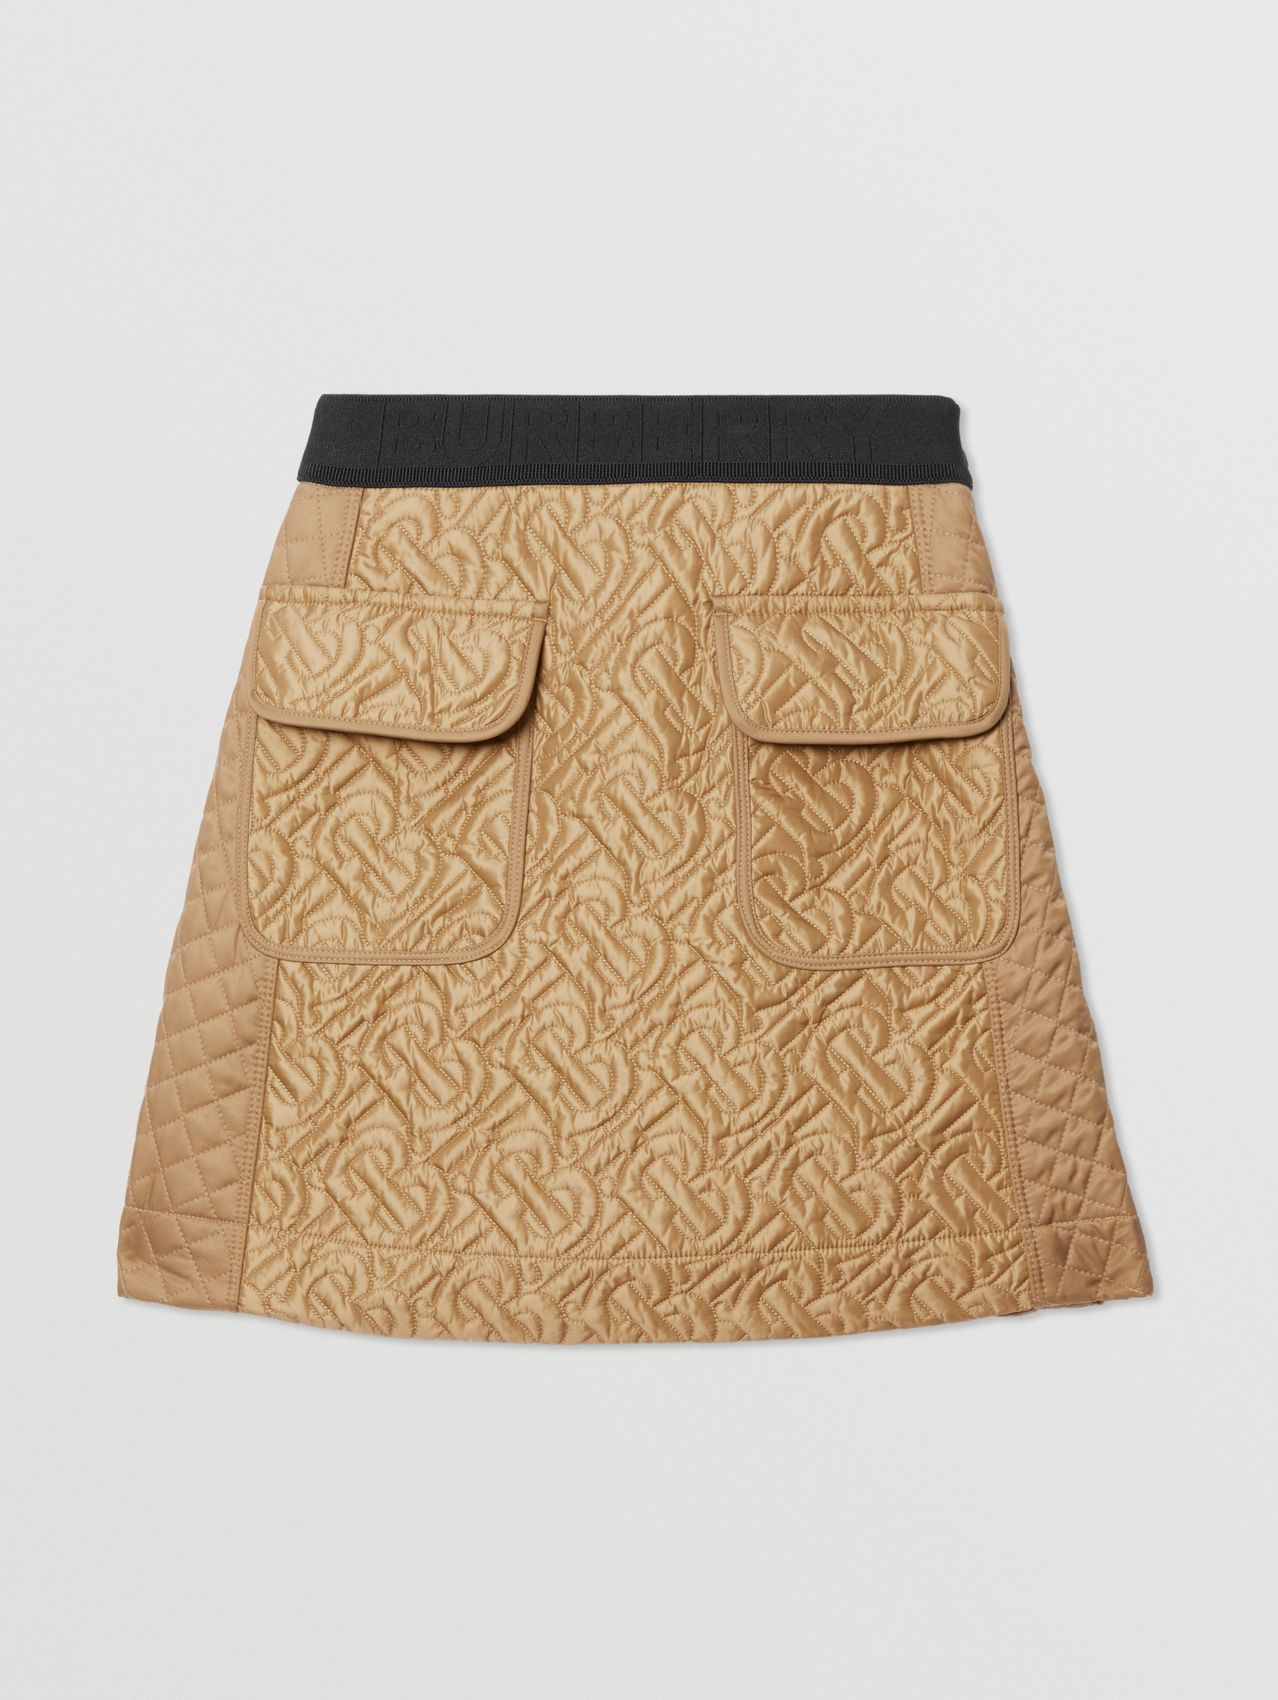 Monogram Quilted Panel Recycled Polyester Skirt in Honey